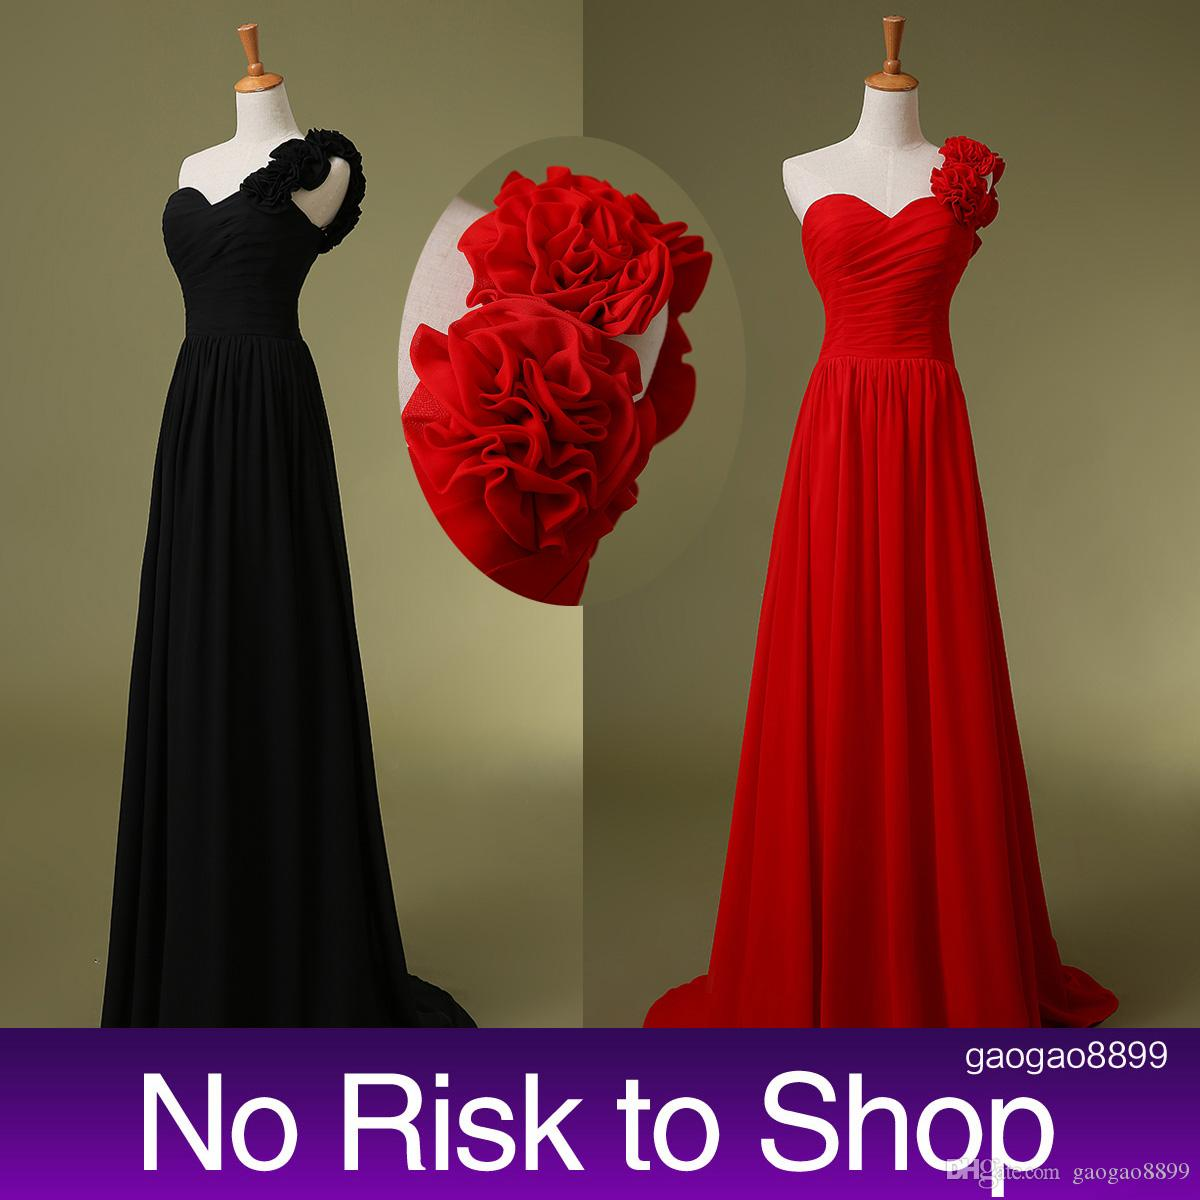 Black bridesmaid dresses under 50 dollars fashion dresses black bridesmaid dresses under 50 dollars ombrellifo Image collections